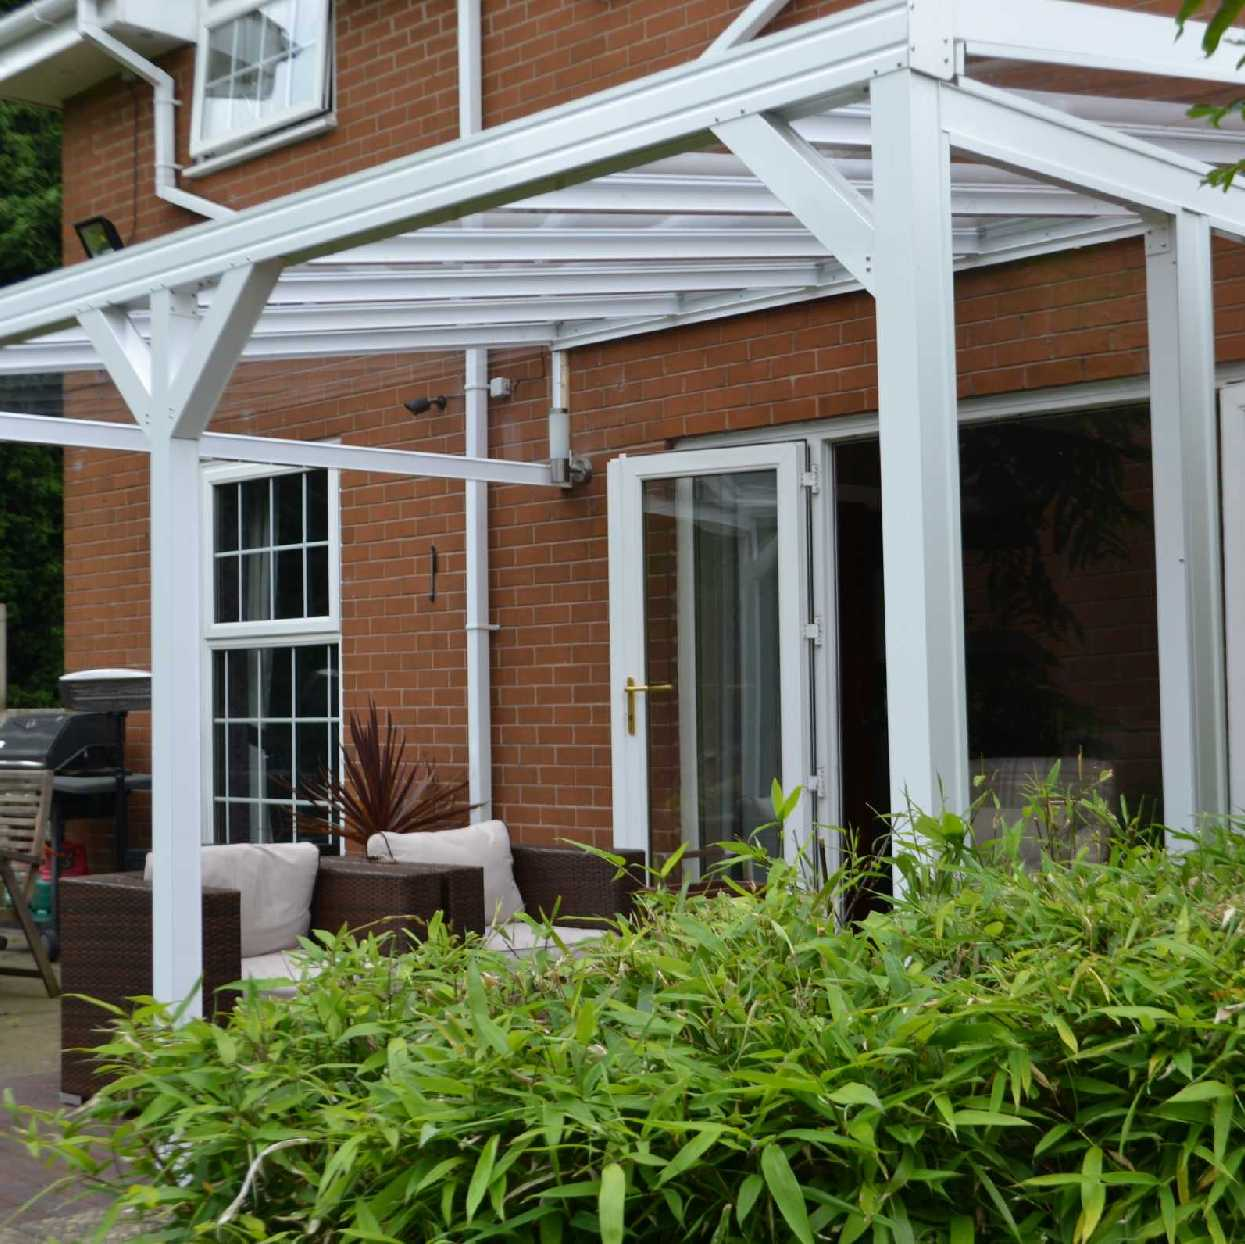 Omega Smart White Lean-To Canopy UNGLAZED for 6mm Glazing - 2.8m (W) x 2.5m (P), (2) Supporting Posts from Omega Build